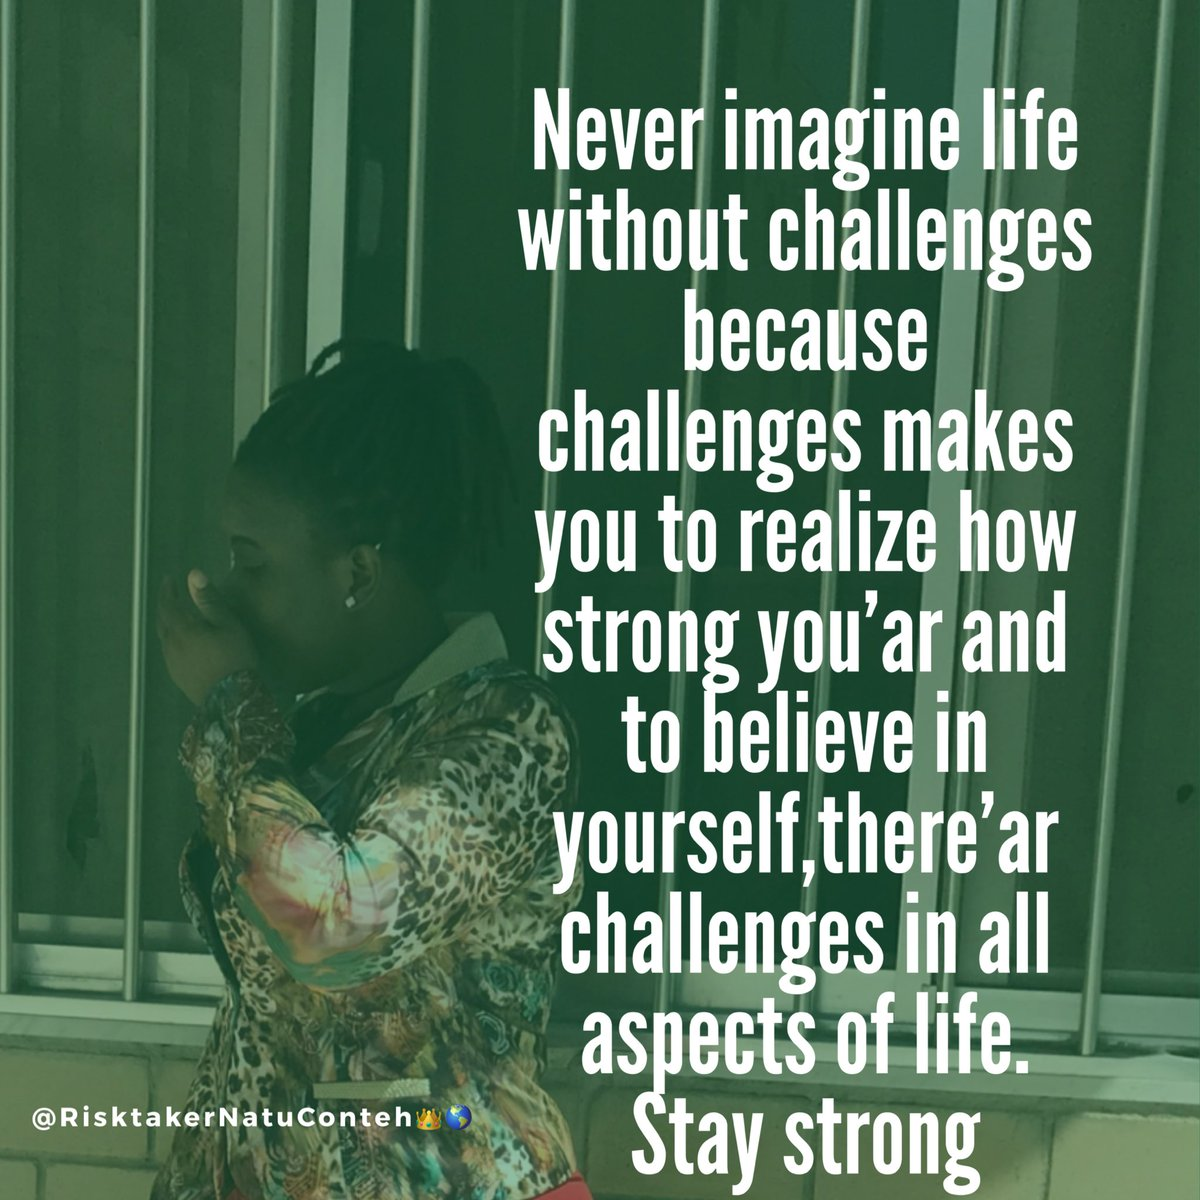 Stay strong  #beautywithboldness #risktaker <br>http://pic.twitter.com/4conY4O3ki